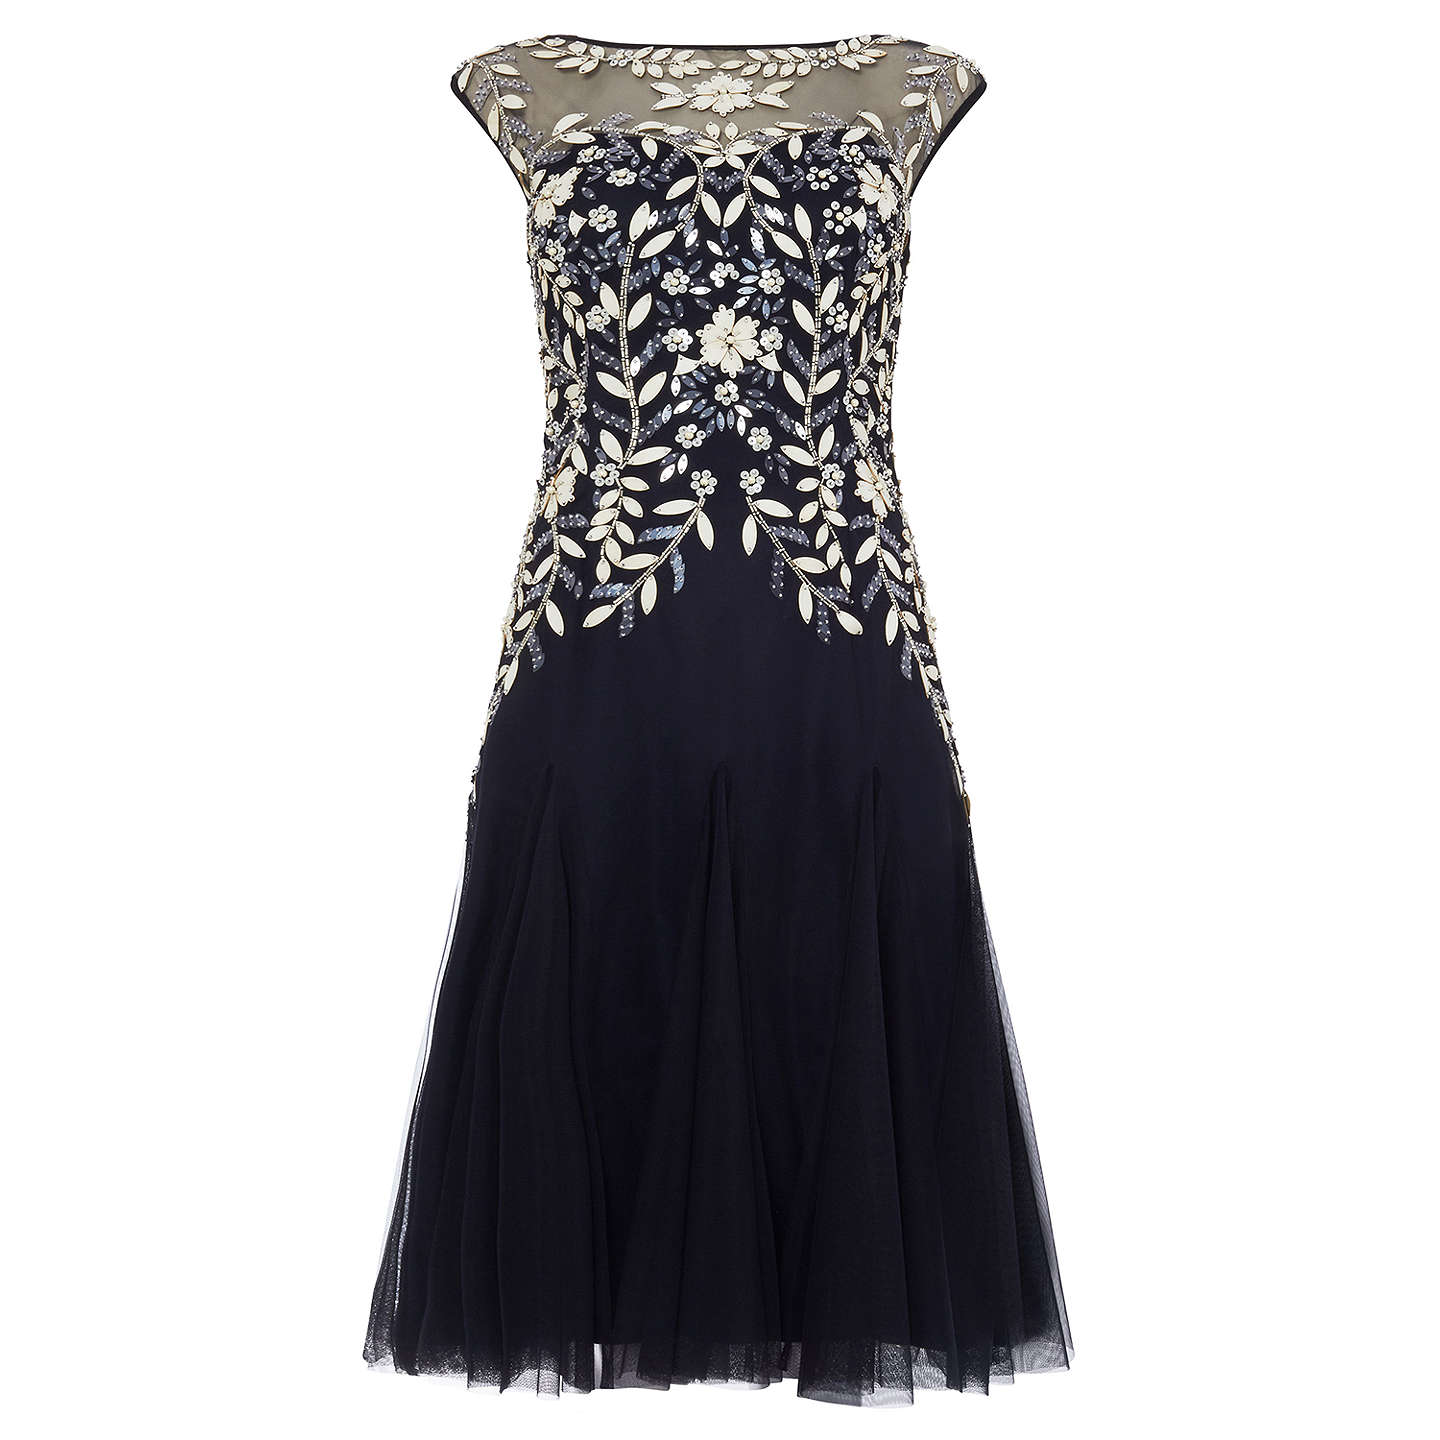 BuyPhase Eight Ursula Tulle Dress, Navy, 10 Online at johnlewis.com